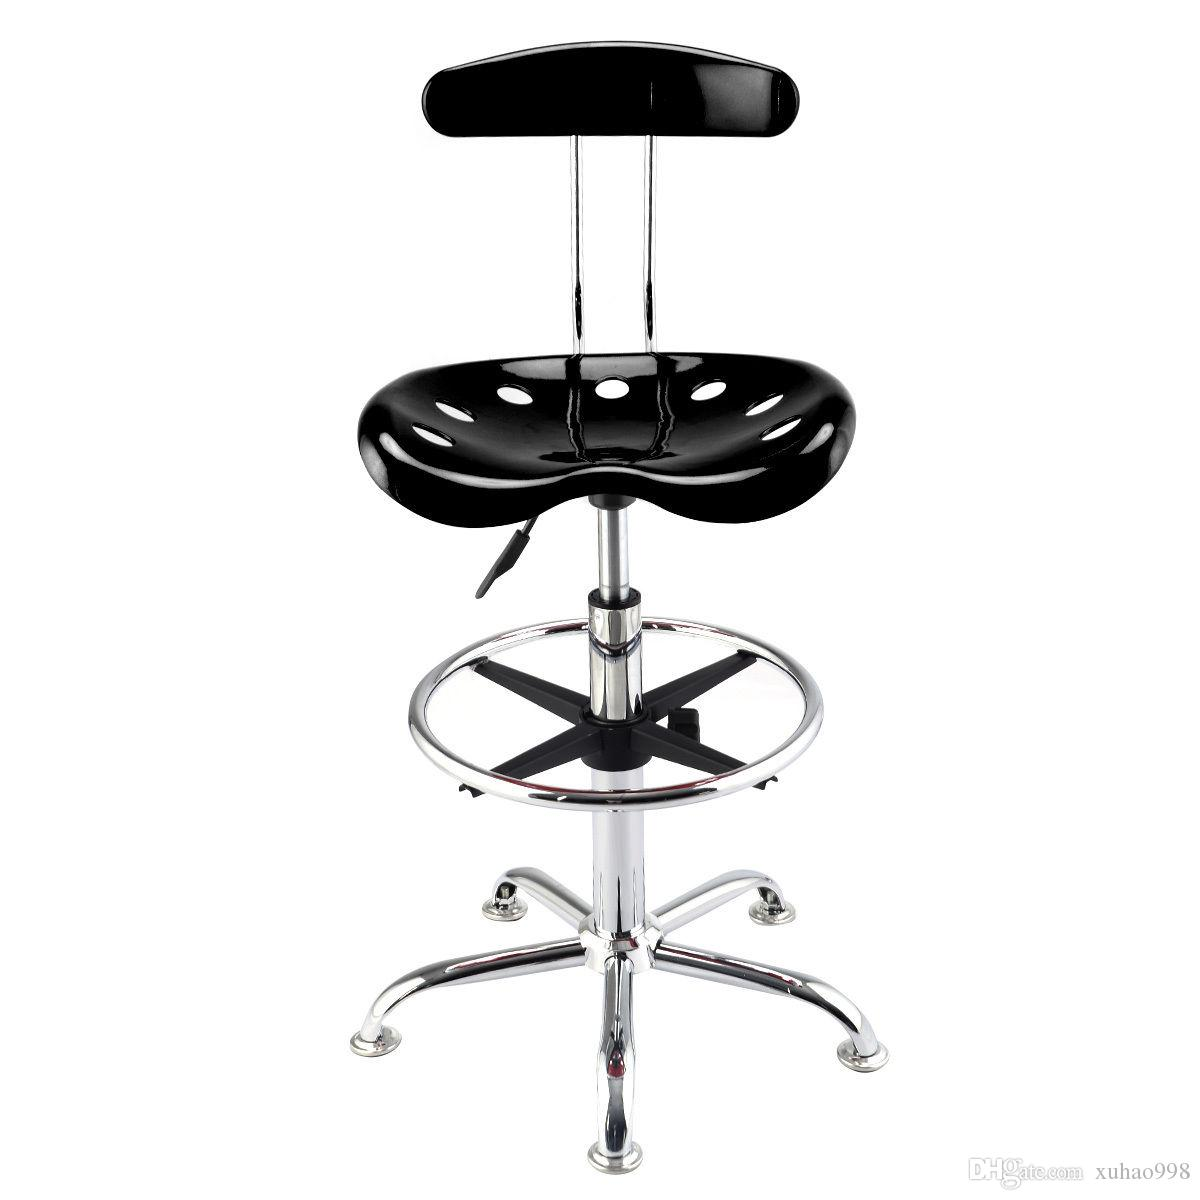 Astounding 2019 Adjustable Bar Stools Abs Tractor Seat Chrome Kitchen Drafting Chair Black From Xuhao998 51 26 Dhgate Com Ibusinesslaw Wood Chair Design Ideas Ibusinesslaworg